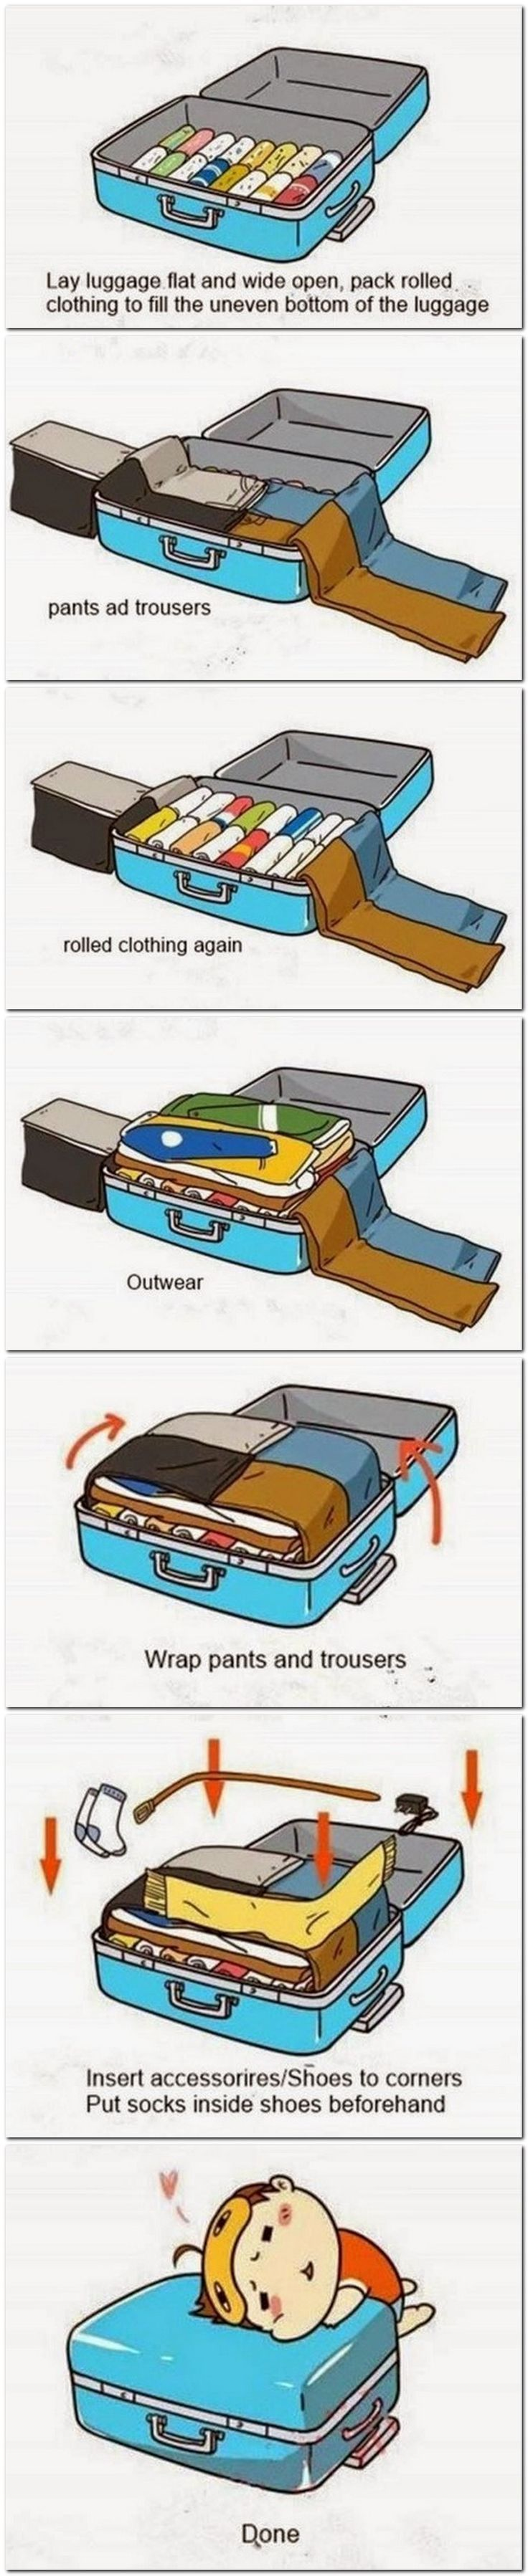 How to pack a suit case to get the very most in less space. Good To Know!